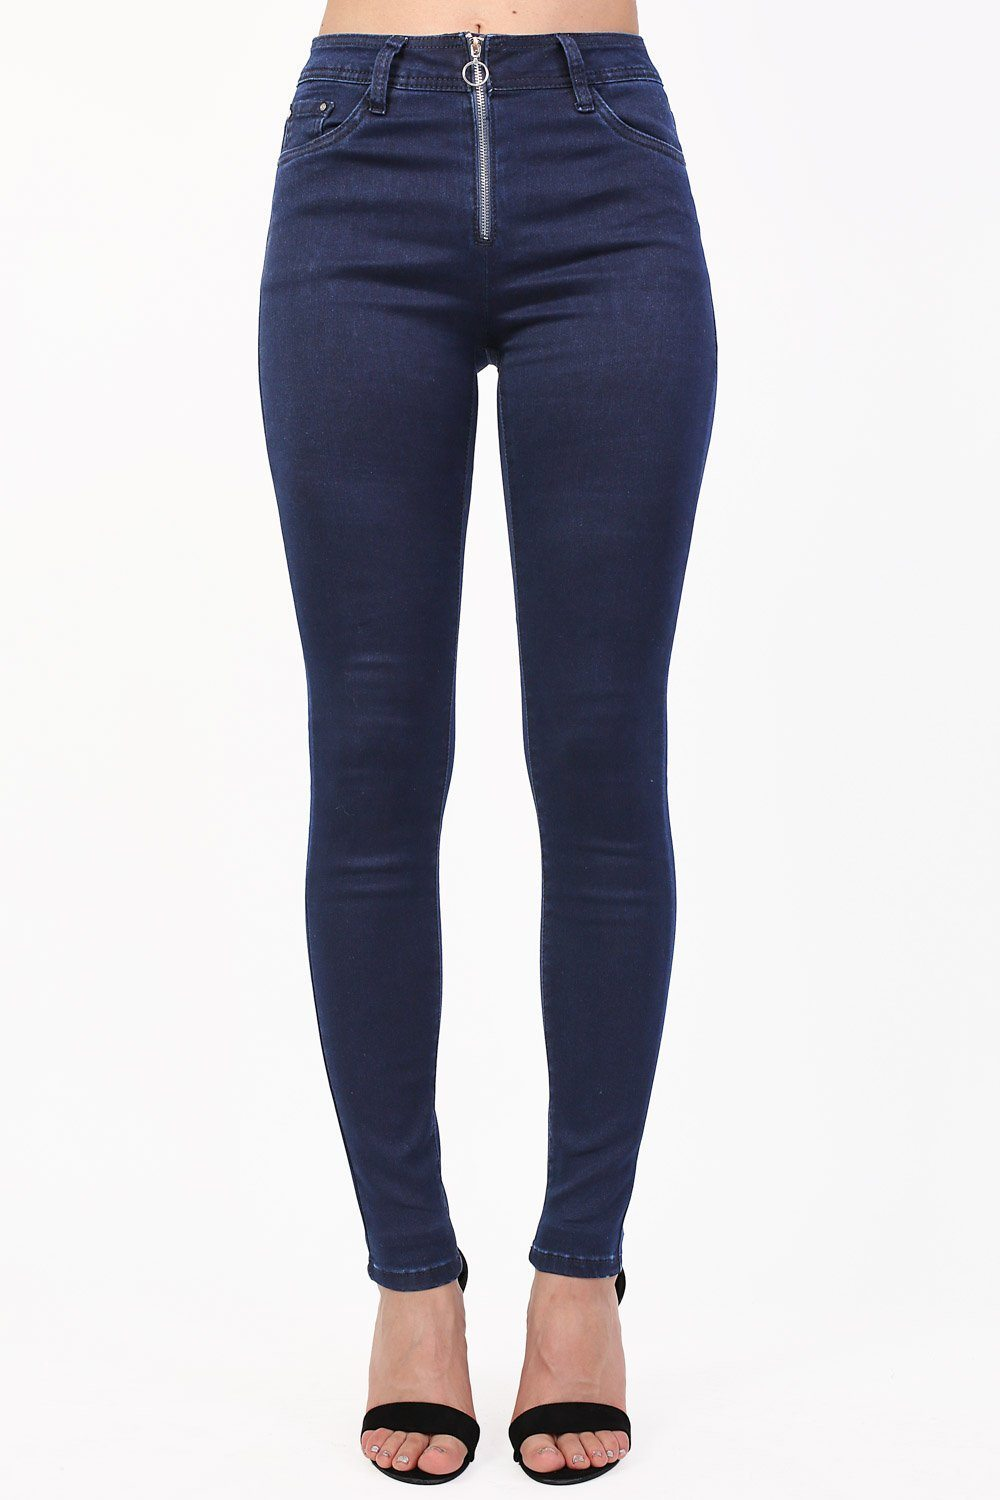 Plain Exposed Zip Skinny Jeans in Dark Denim 0